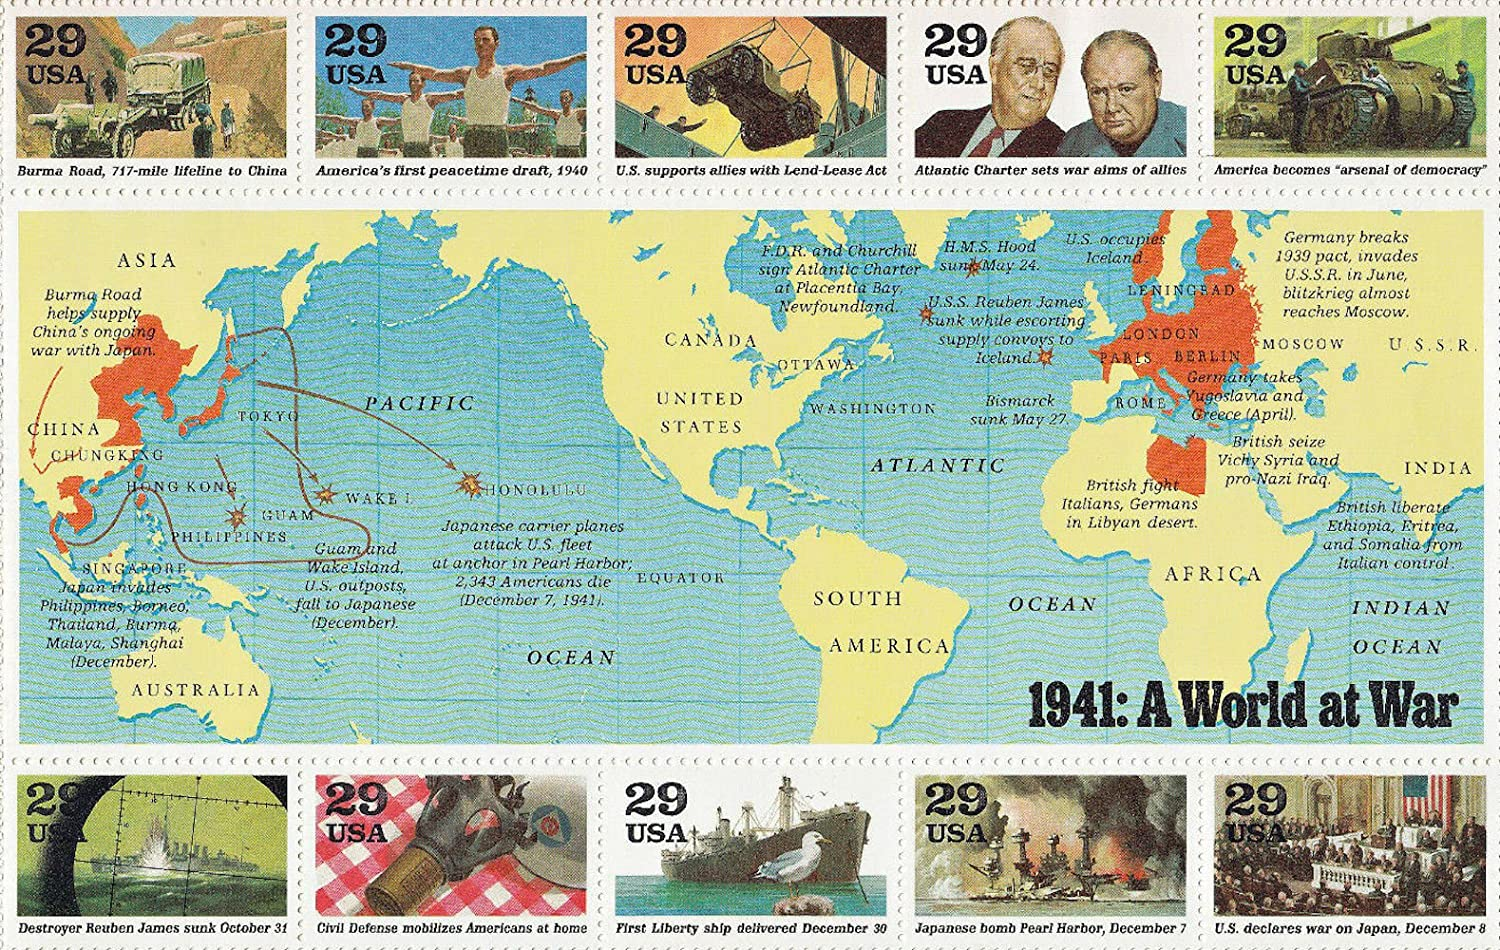 Amazon wwii 1941 a world at war world war ii full sheet of amazon wwii 1941 a world at war world war ii full sheet of 20 x 29 cent postage stamps usa 1991 scott 2559 toys games gumiabroncs Images